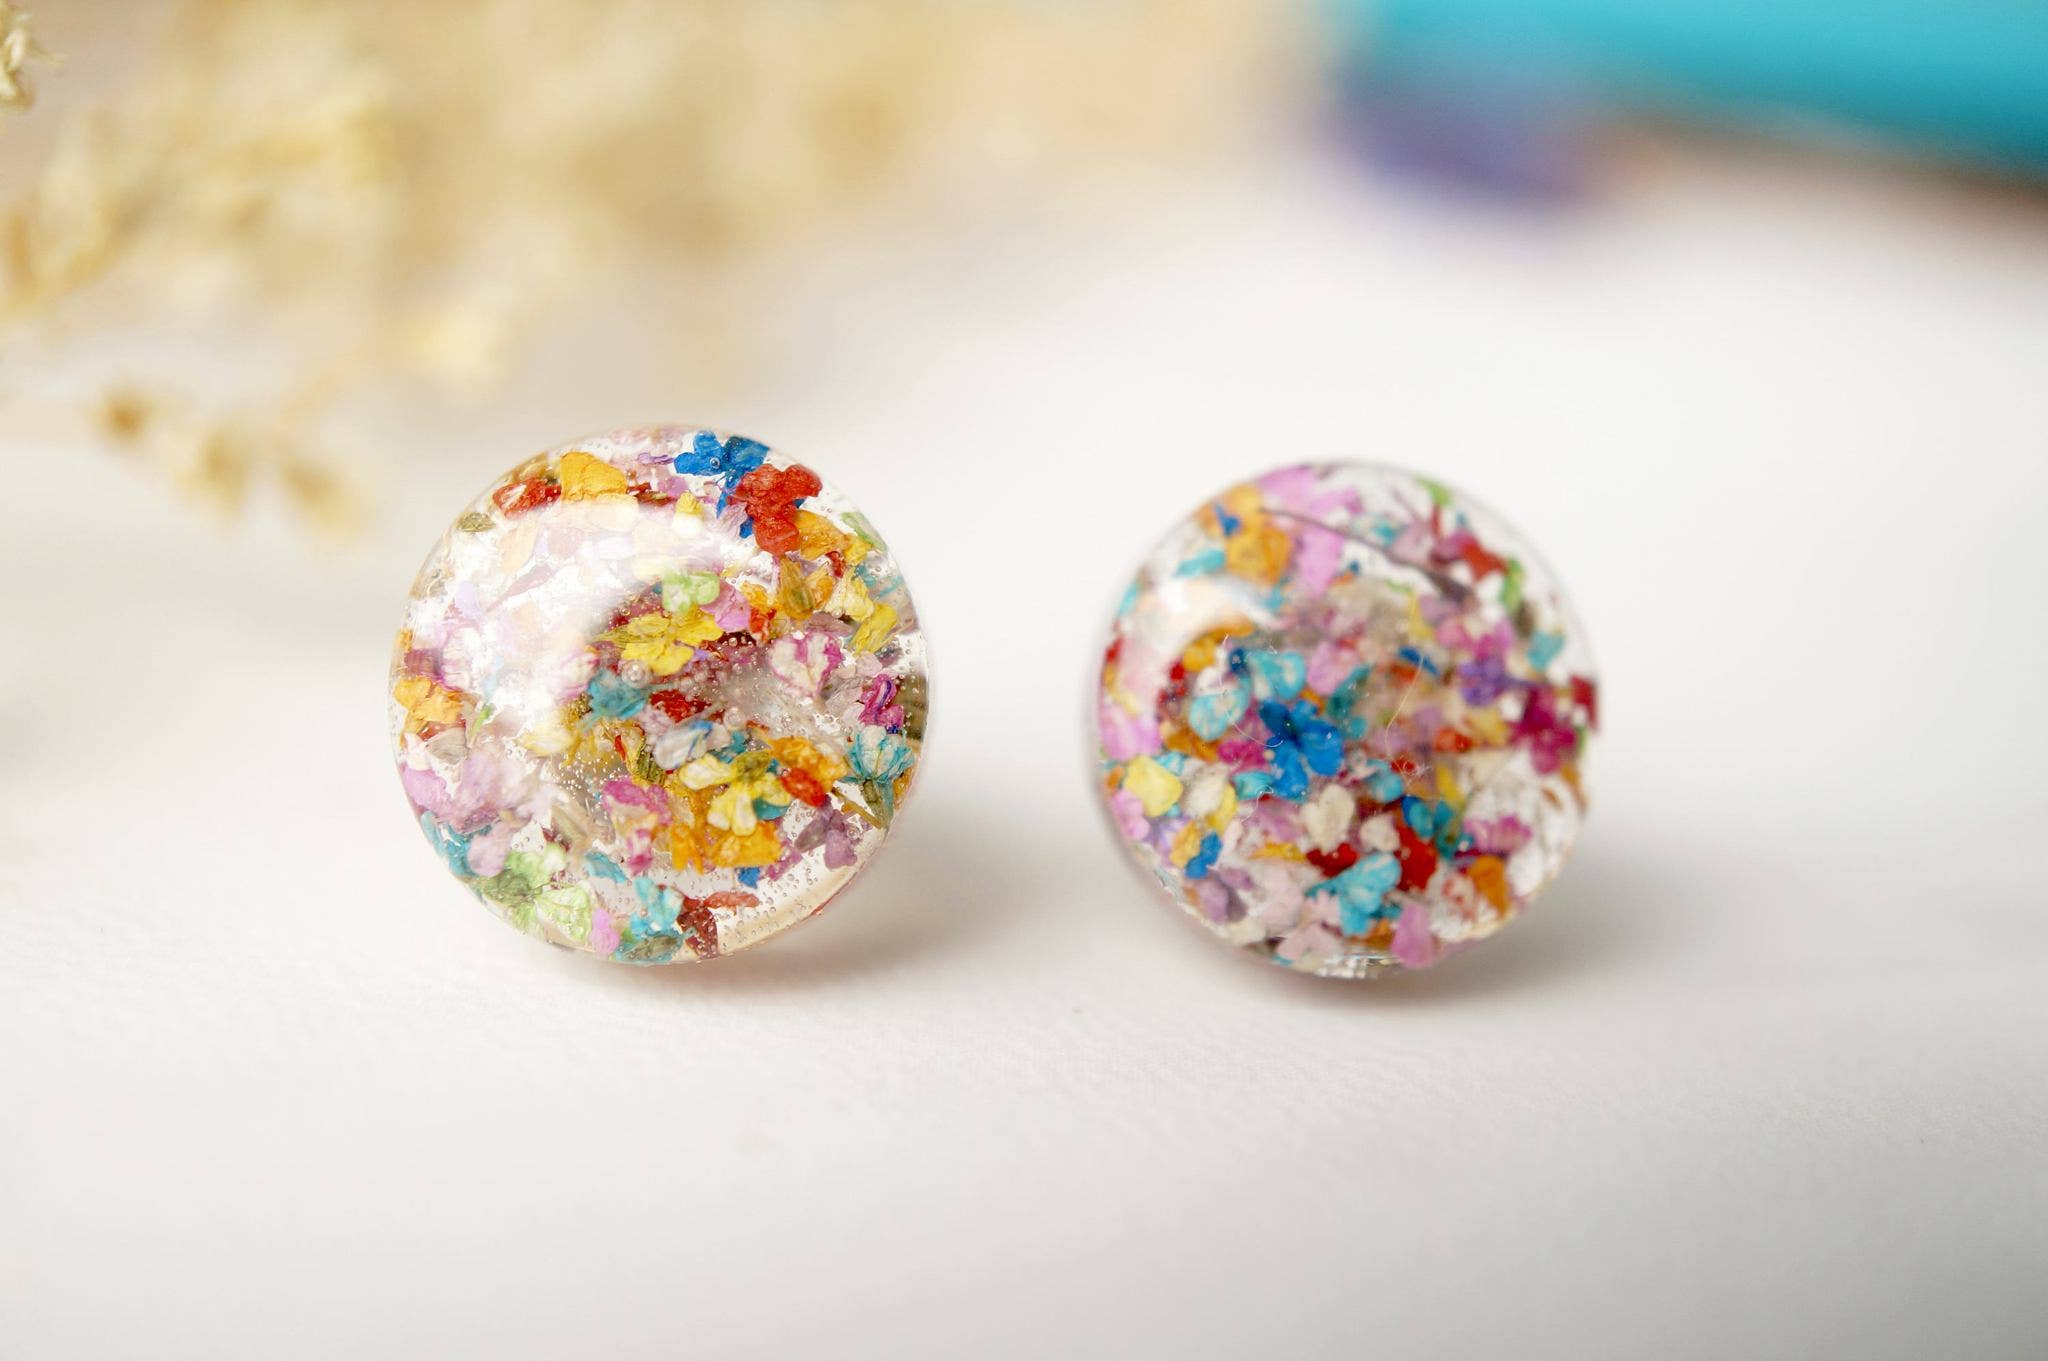 White and Pink Earrings Hammered Gold Post Earrings Pressed Flower Post Earrings With Howlite